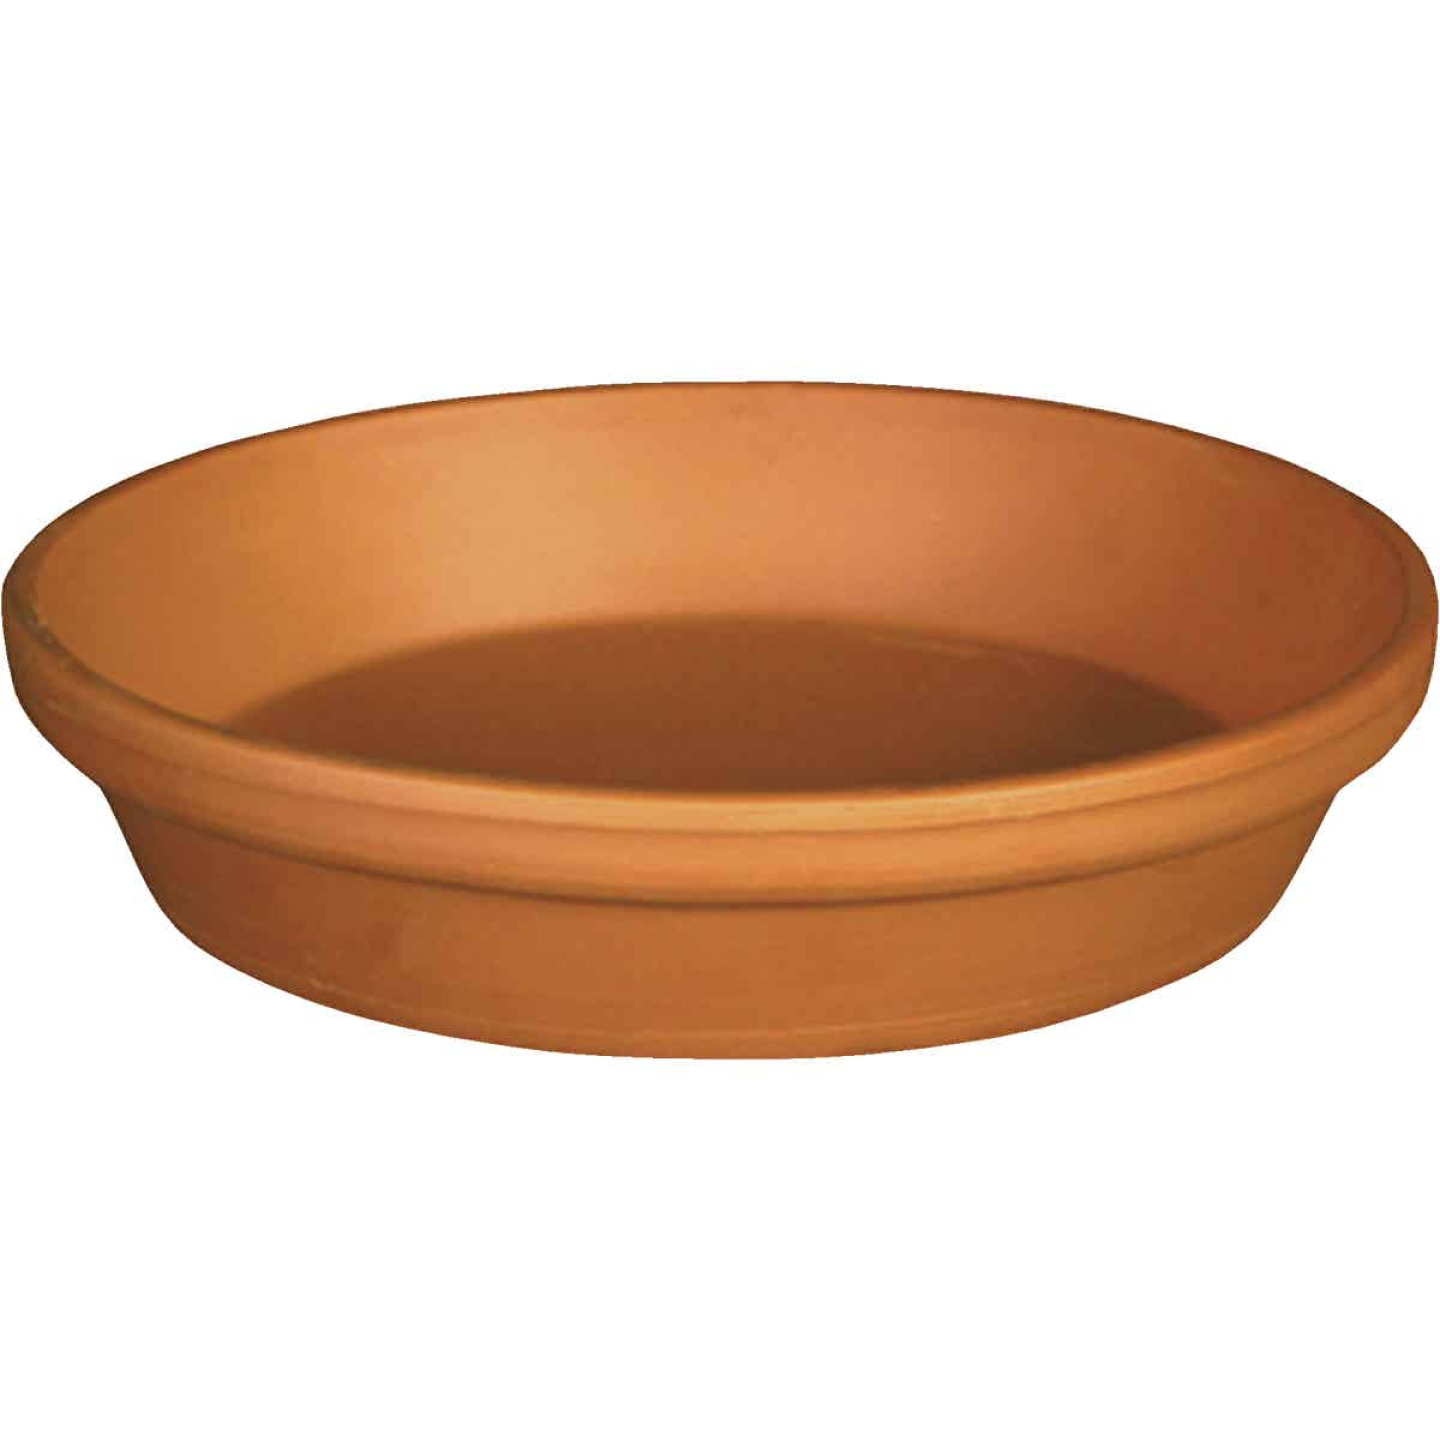 Ceramo 10 In. Terracotta Clay Standard Flower Pot Saucer Image 1